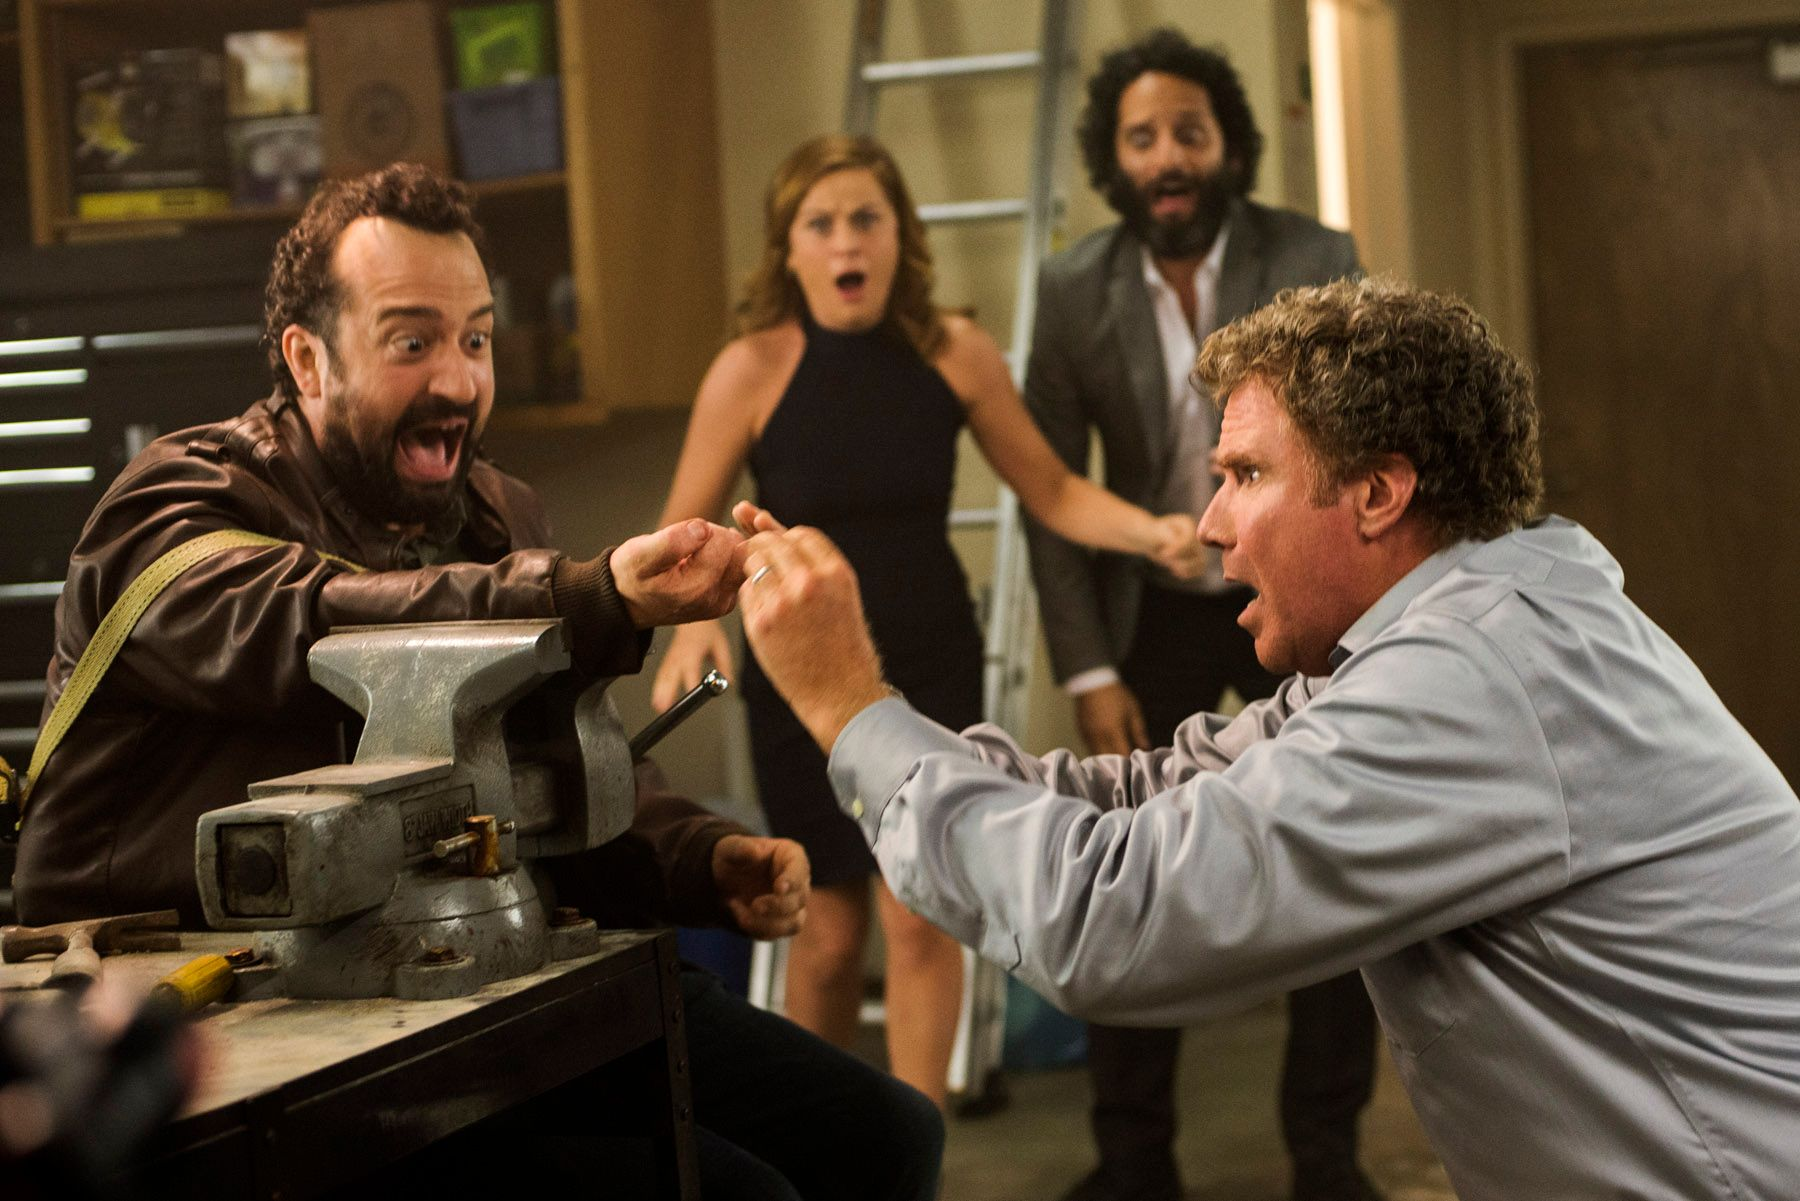 New clips & interview released for Will Ferrell & Amy Poehler's The House